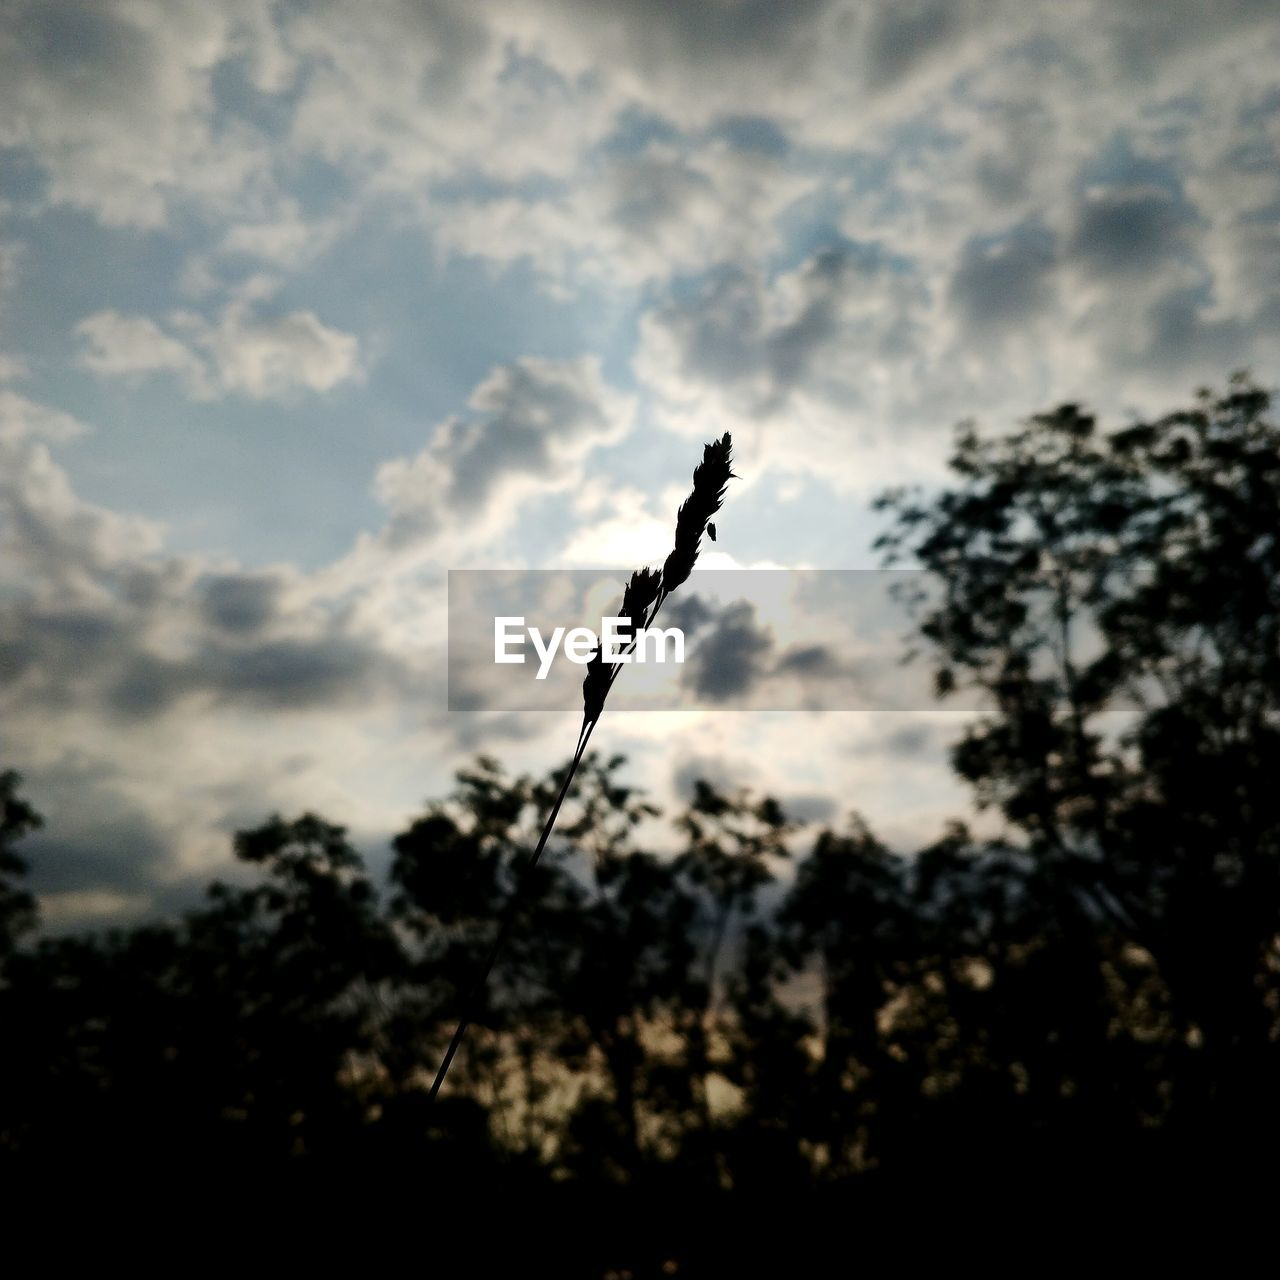 sky, cloud - sky, plant, growth, beauty in nature, tree, tranquility, nature, silhouette, low angle view, no people, sunset, day, outdoors, tranquil scene, focus on foreground, selective focus, scenics - nature, close-up